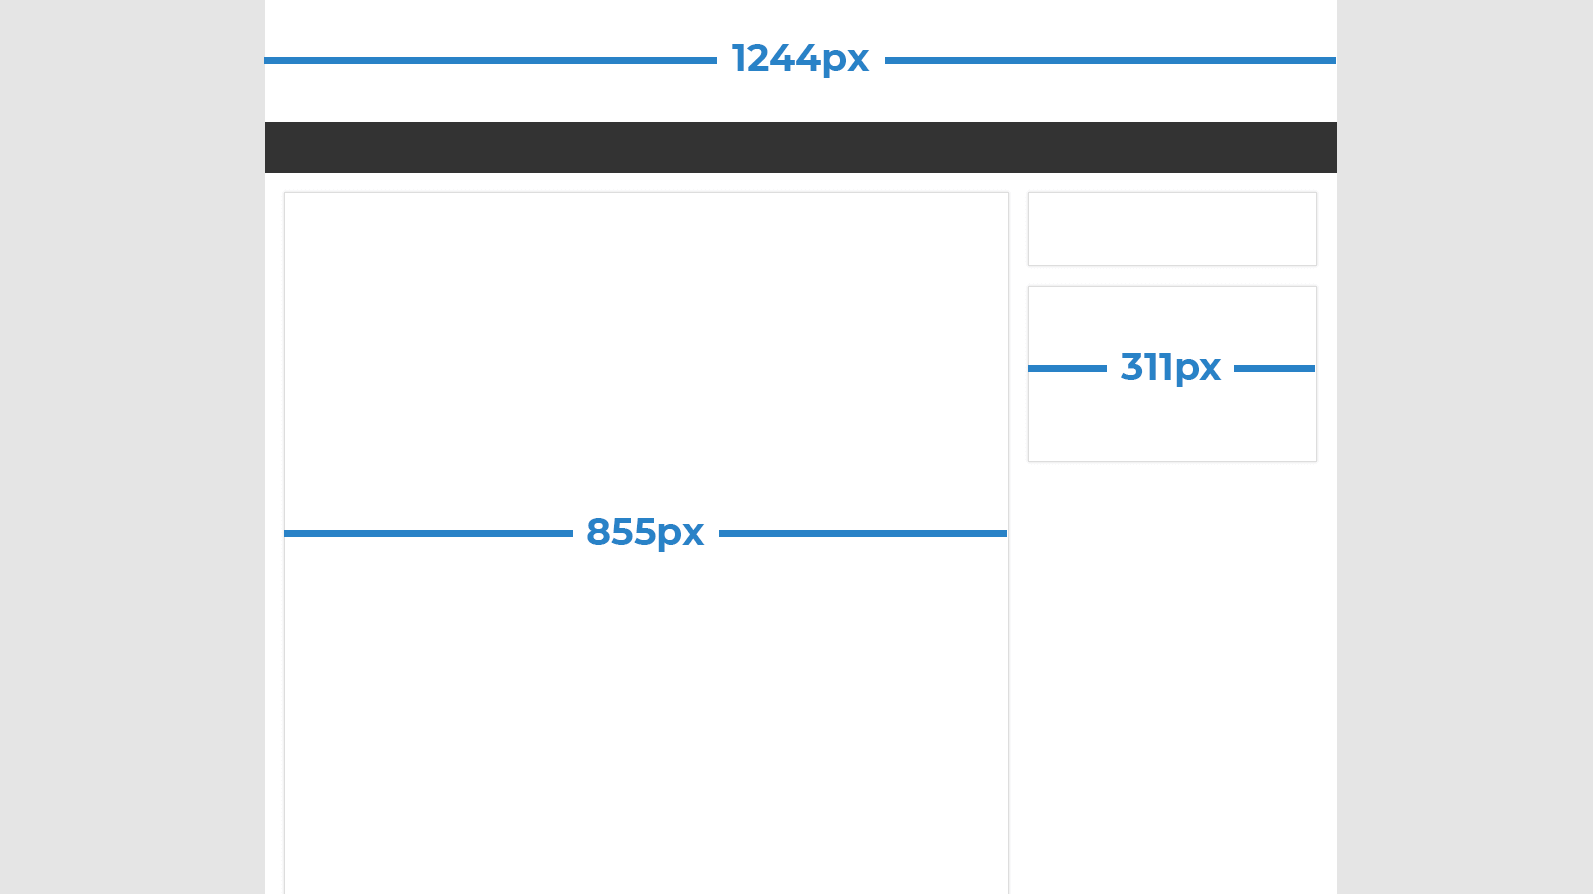 The available ad space is often narrower than the full-screen width